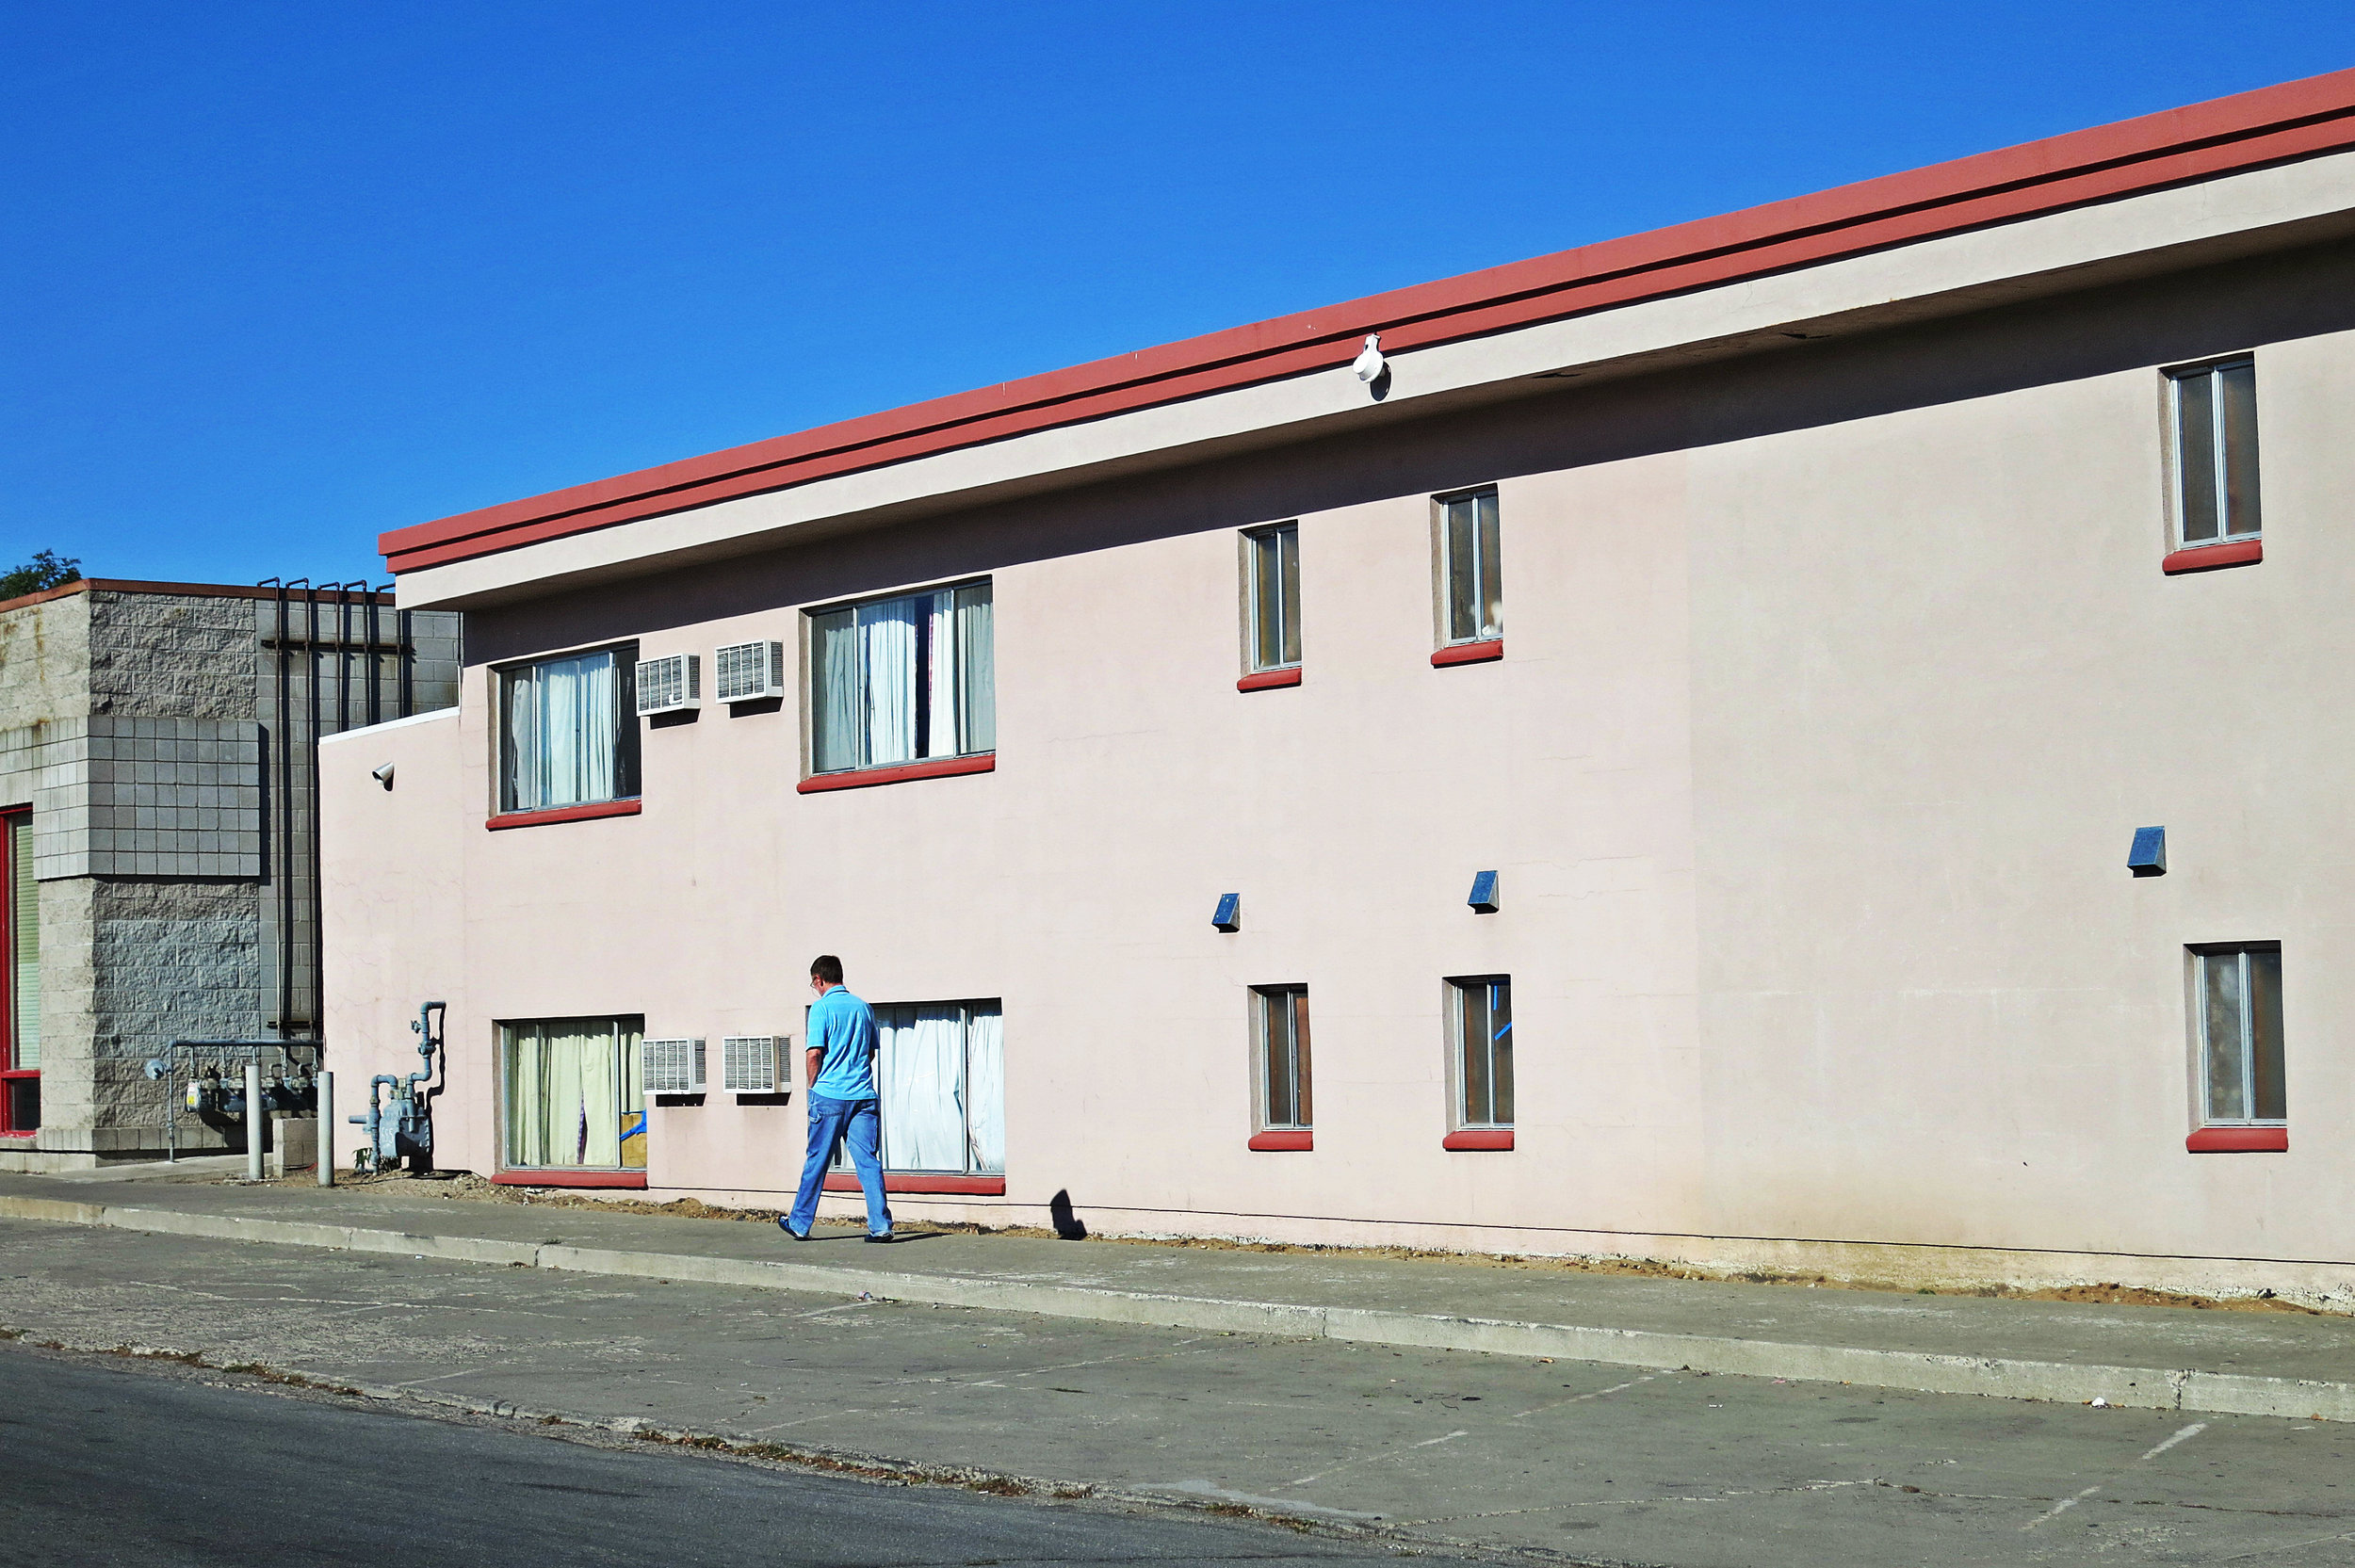 """A backside of the Desert Rose Inn. """"Here we have rather diverse walks of life and we also have people who come through and need a place to stay for a few weeks while they transition to other housing, while they look for a job,"""" McAllister said."""